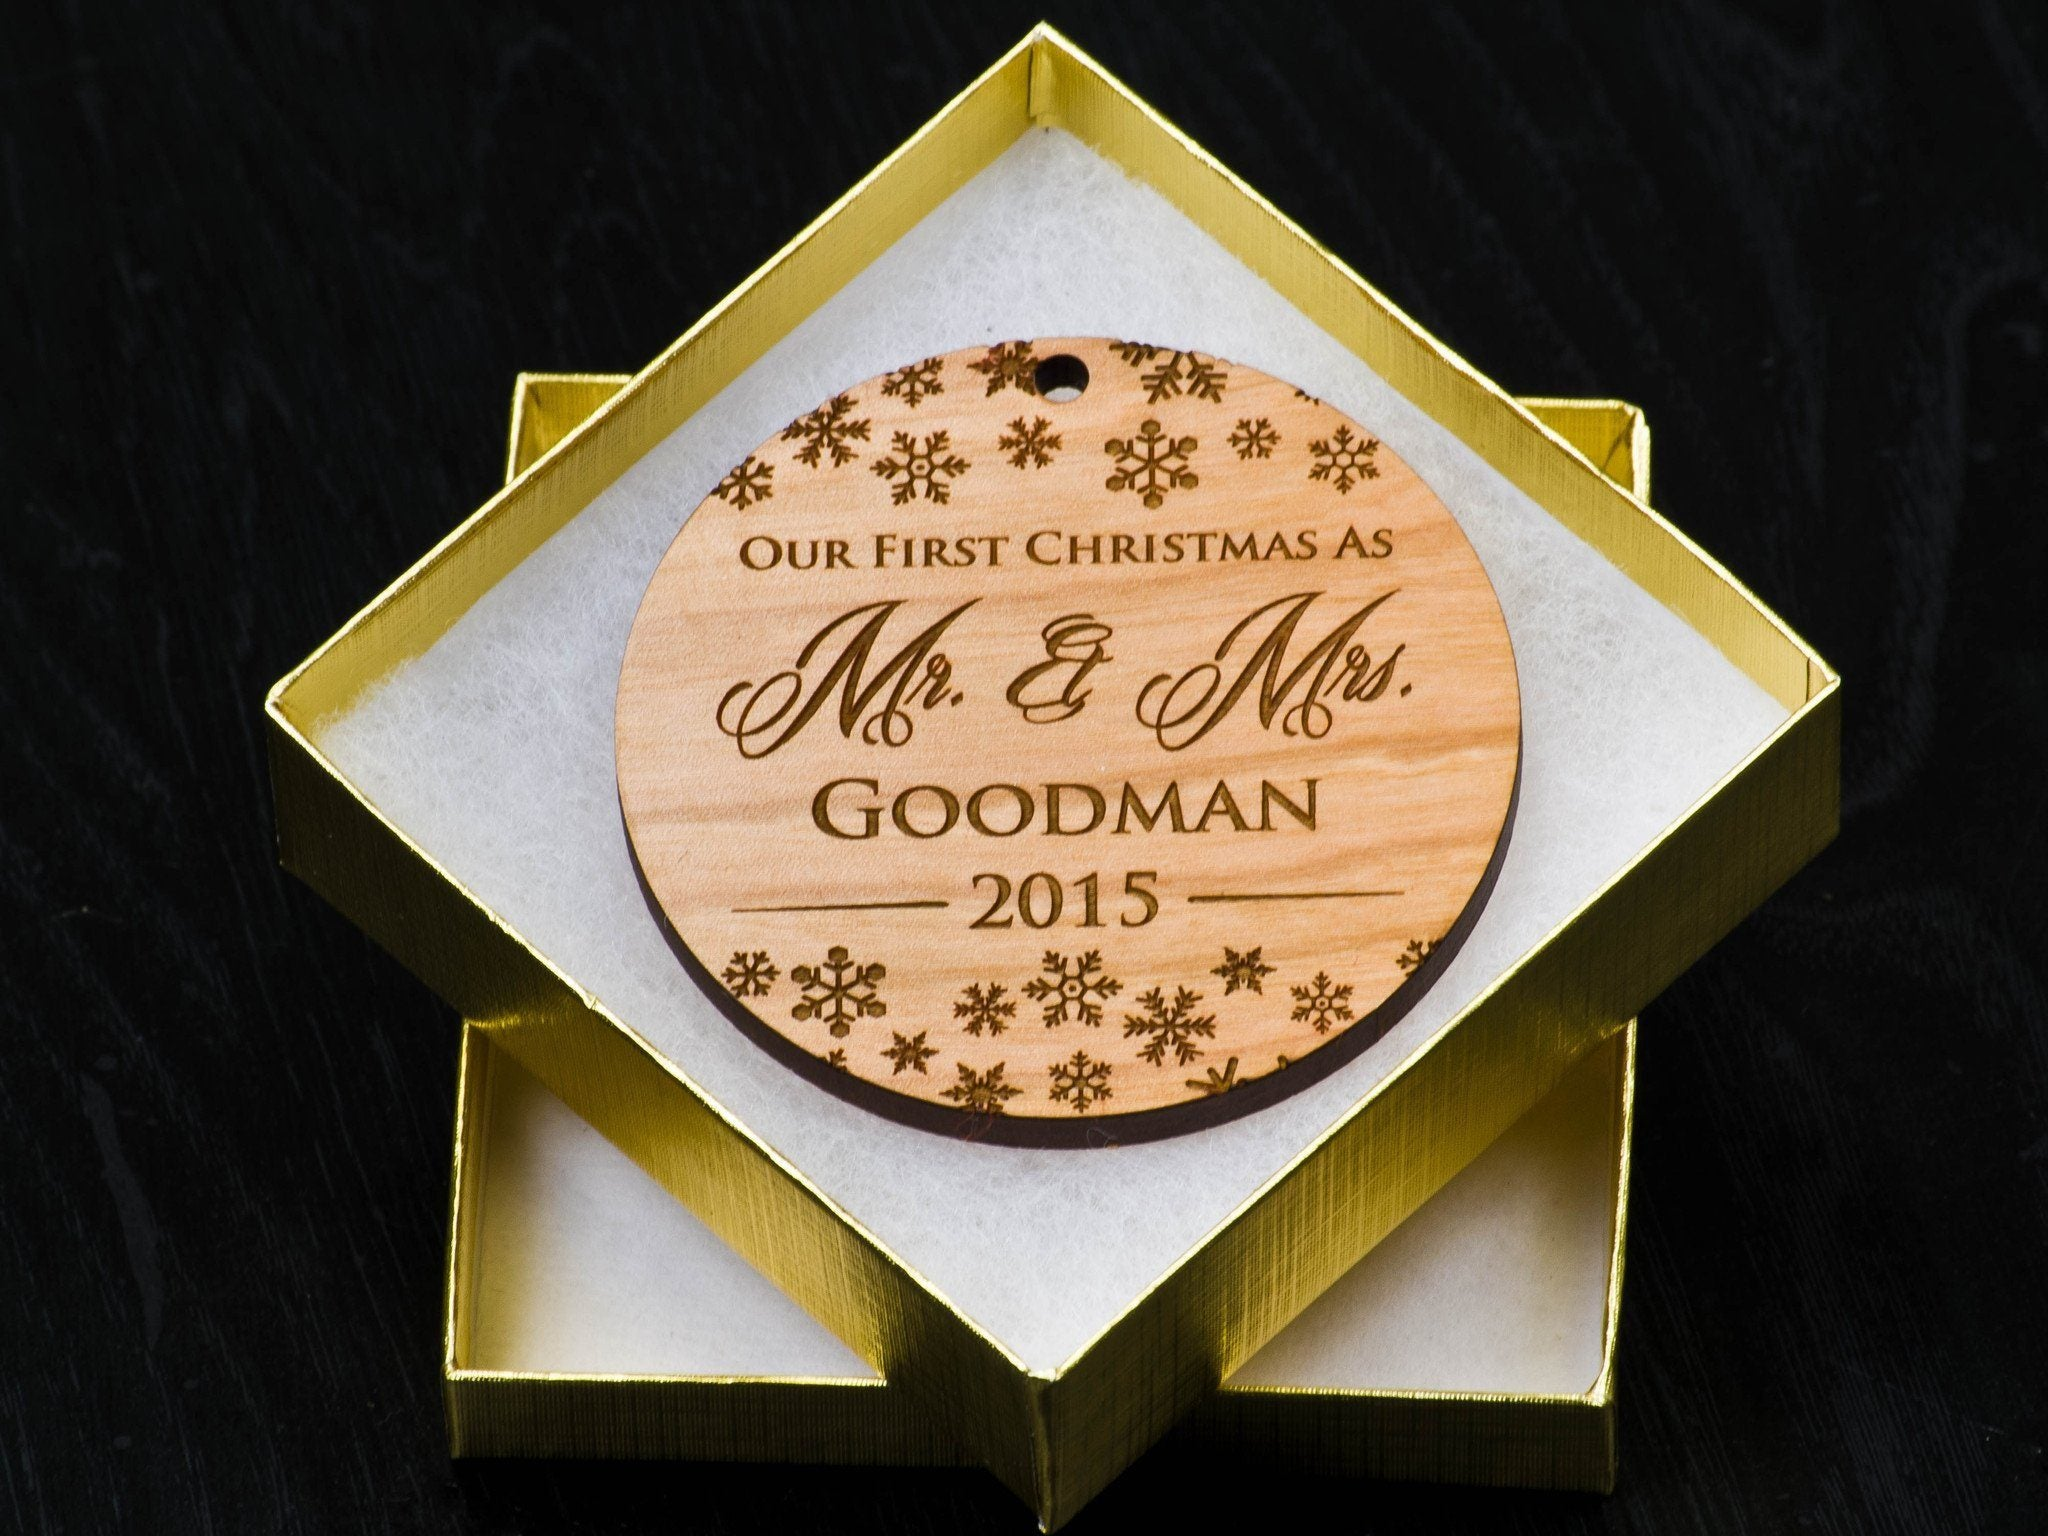 First married christmas ornament - Our First Christmas Ornament First Married Christmas Personalized Ornament First Christmas Together Ornament Custom Wood Ornament